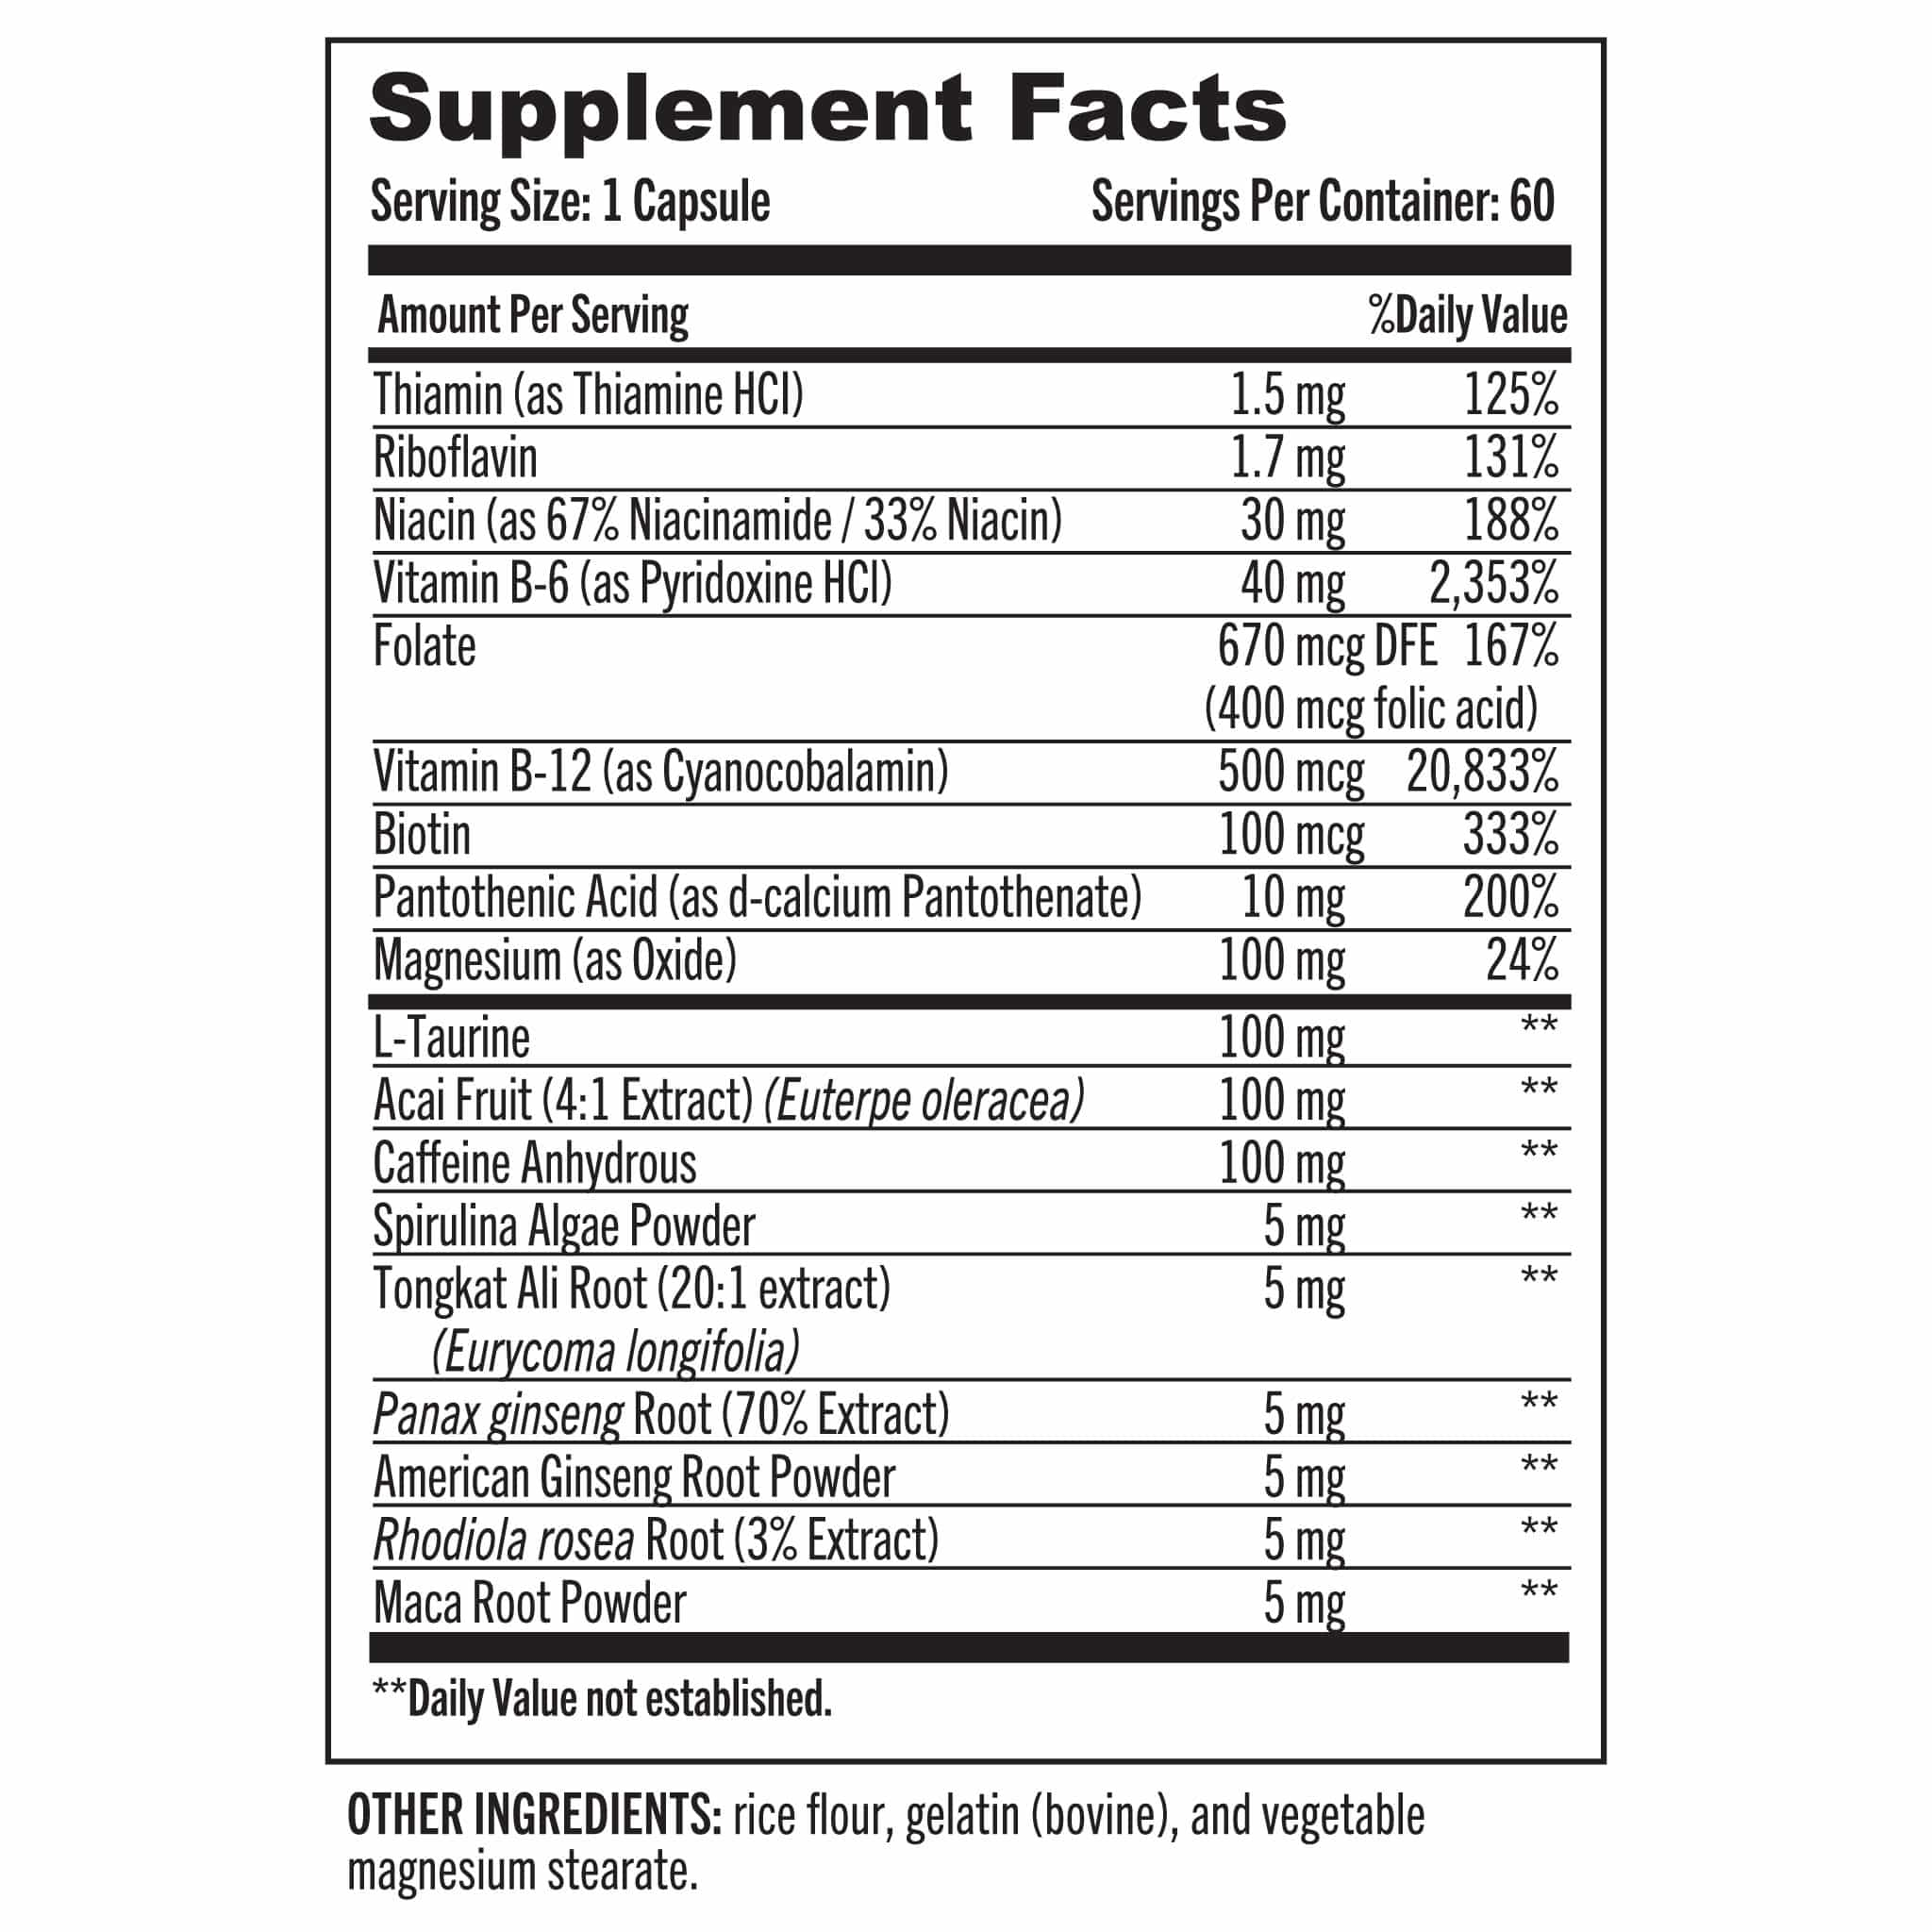 04 Grab The Gold Surge Pure Energy Nutrition Facts 03.20